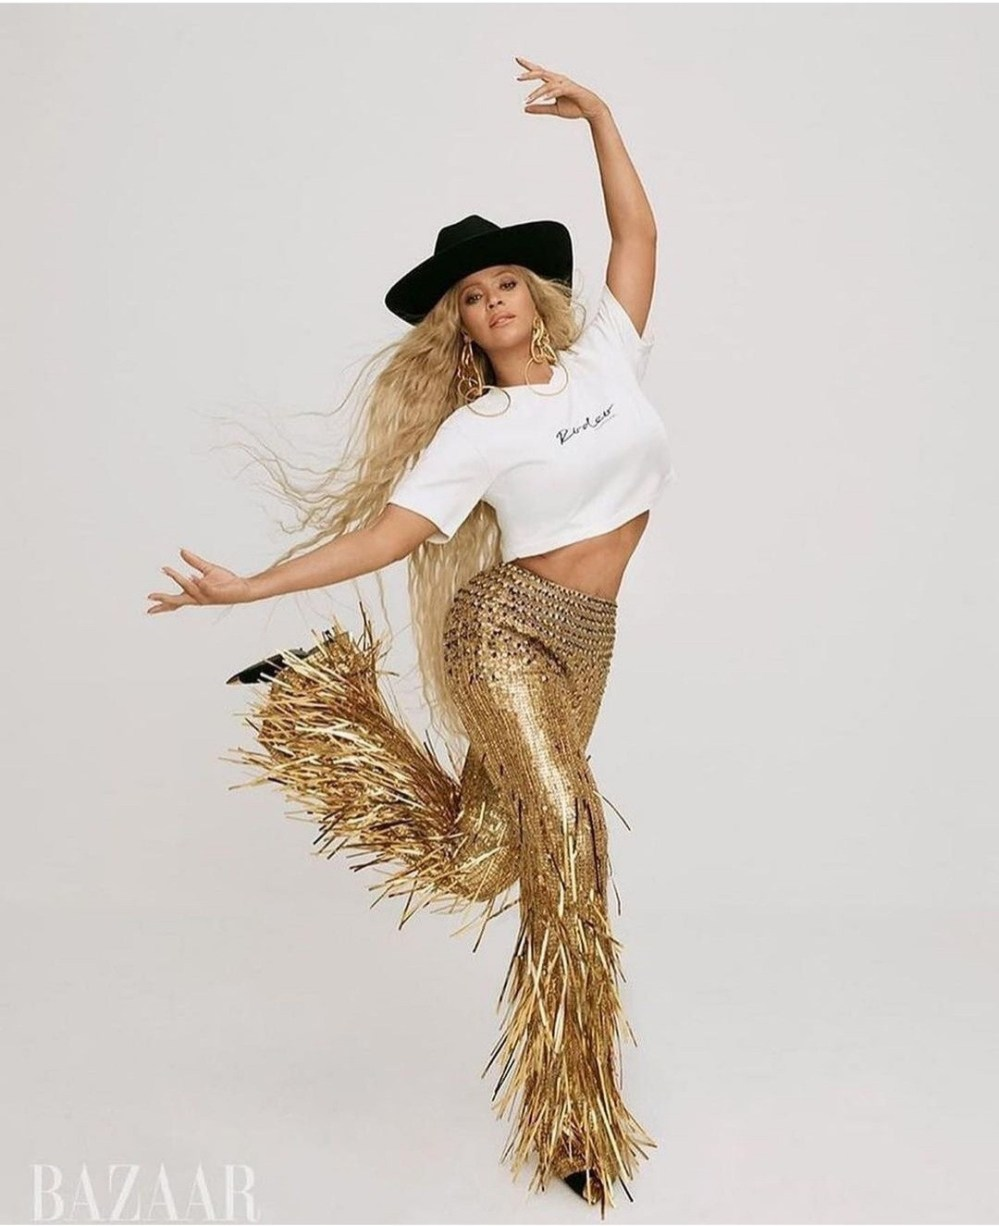 Beyonc? covers September issue of Harper